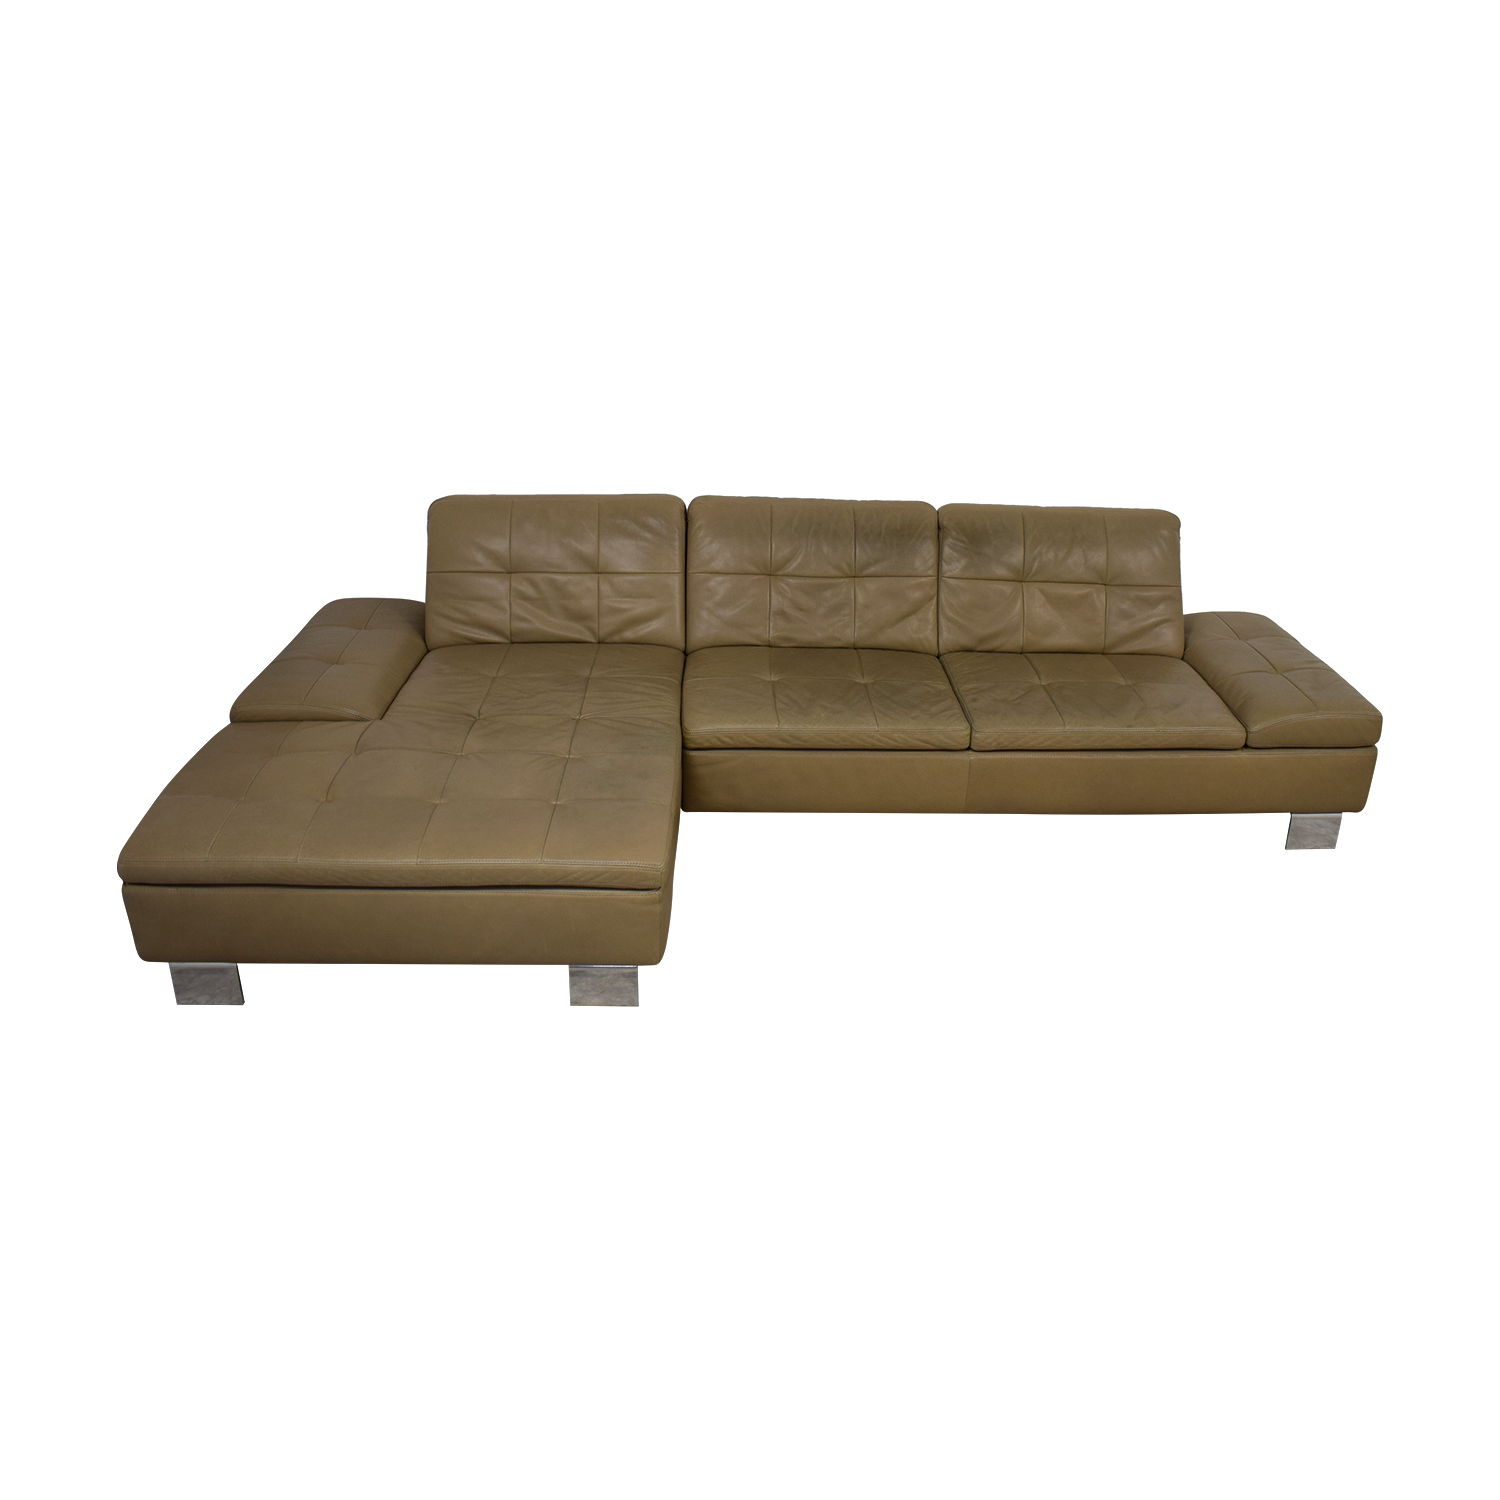 W. Schillig Contemporary Sectional Sofa in Natural Leather / Sofas